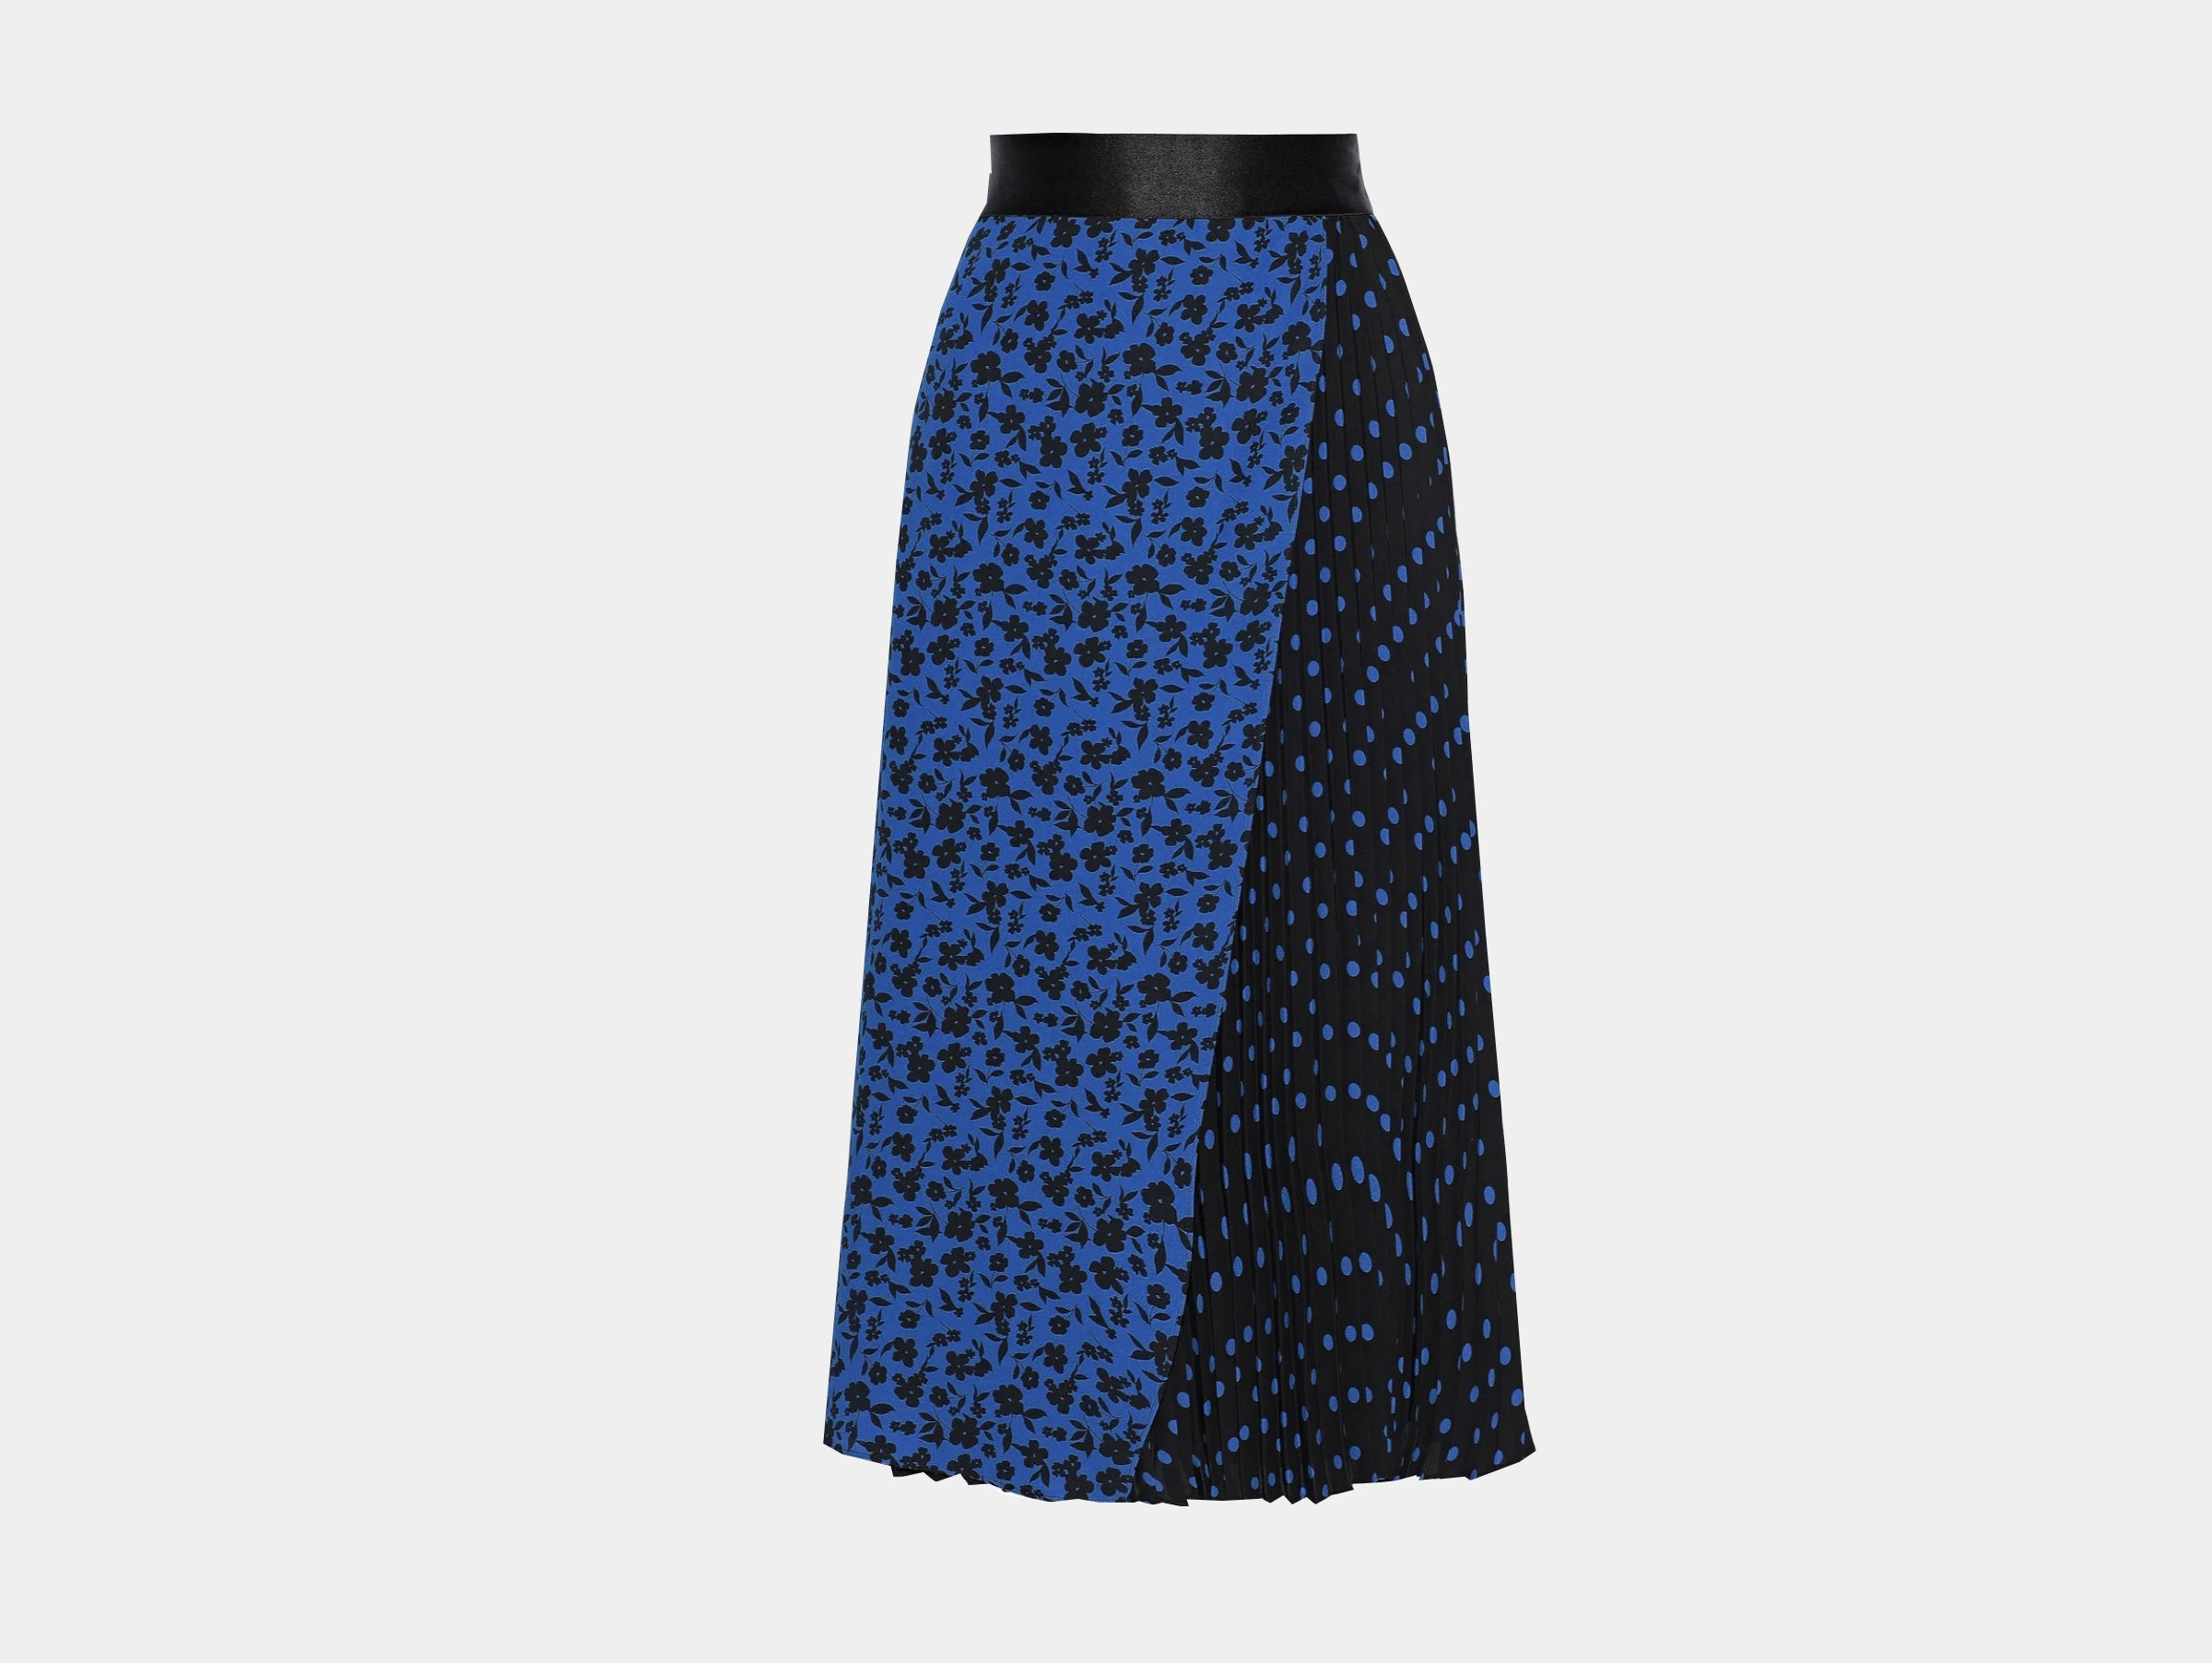 ALICE + OLIVIA - Lilia printed pleated crepe blue black floral polka dots midi skirt